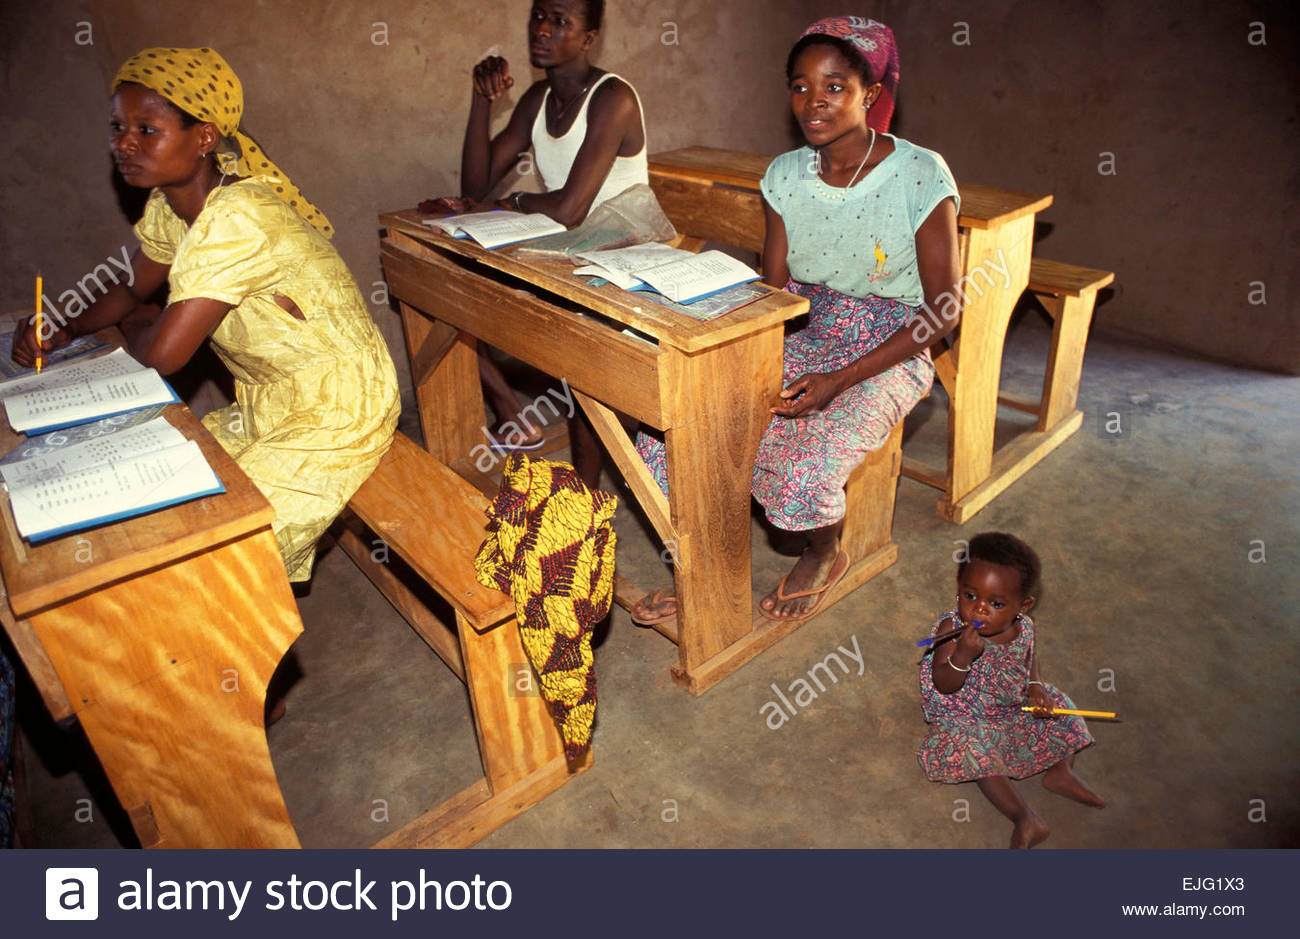 School for adults organized by french association, Togo - Stock Image